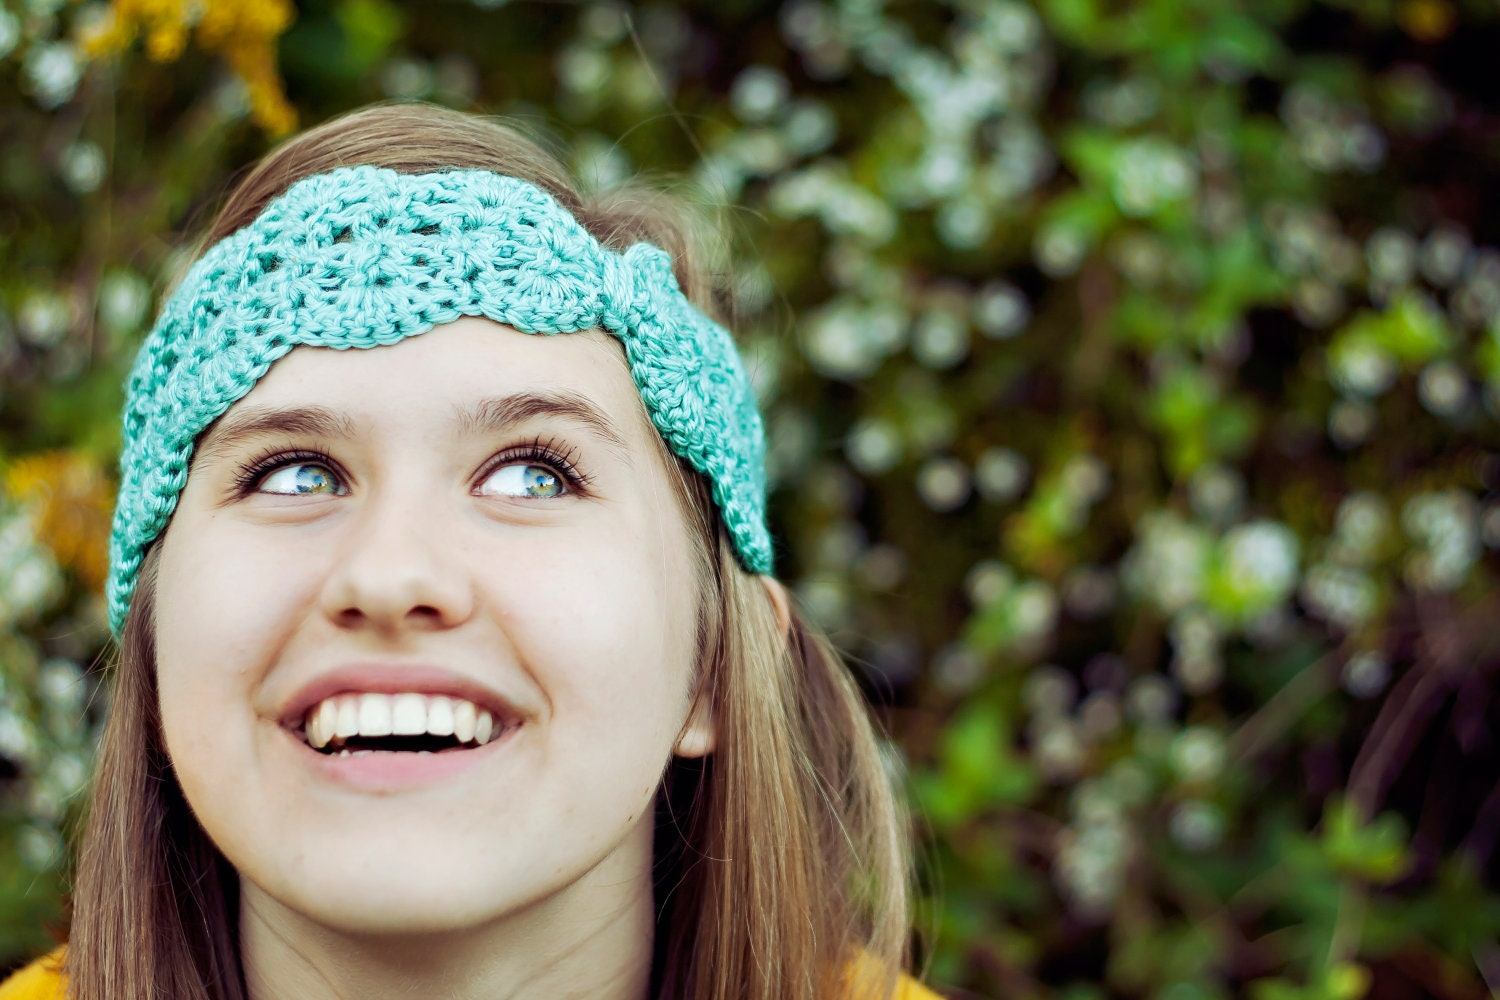 Scallops and Lace Crochet Turban Headband in turquoise